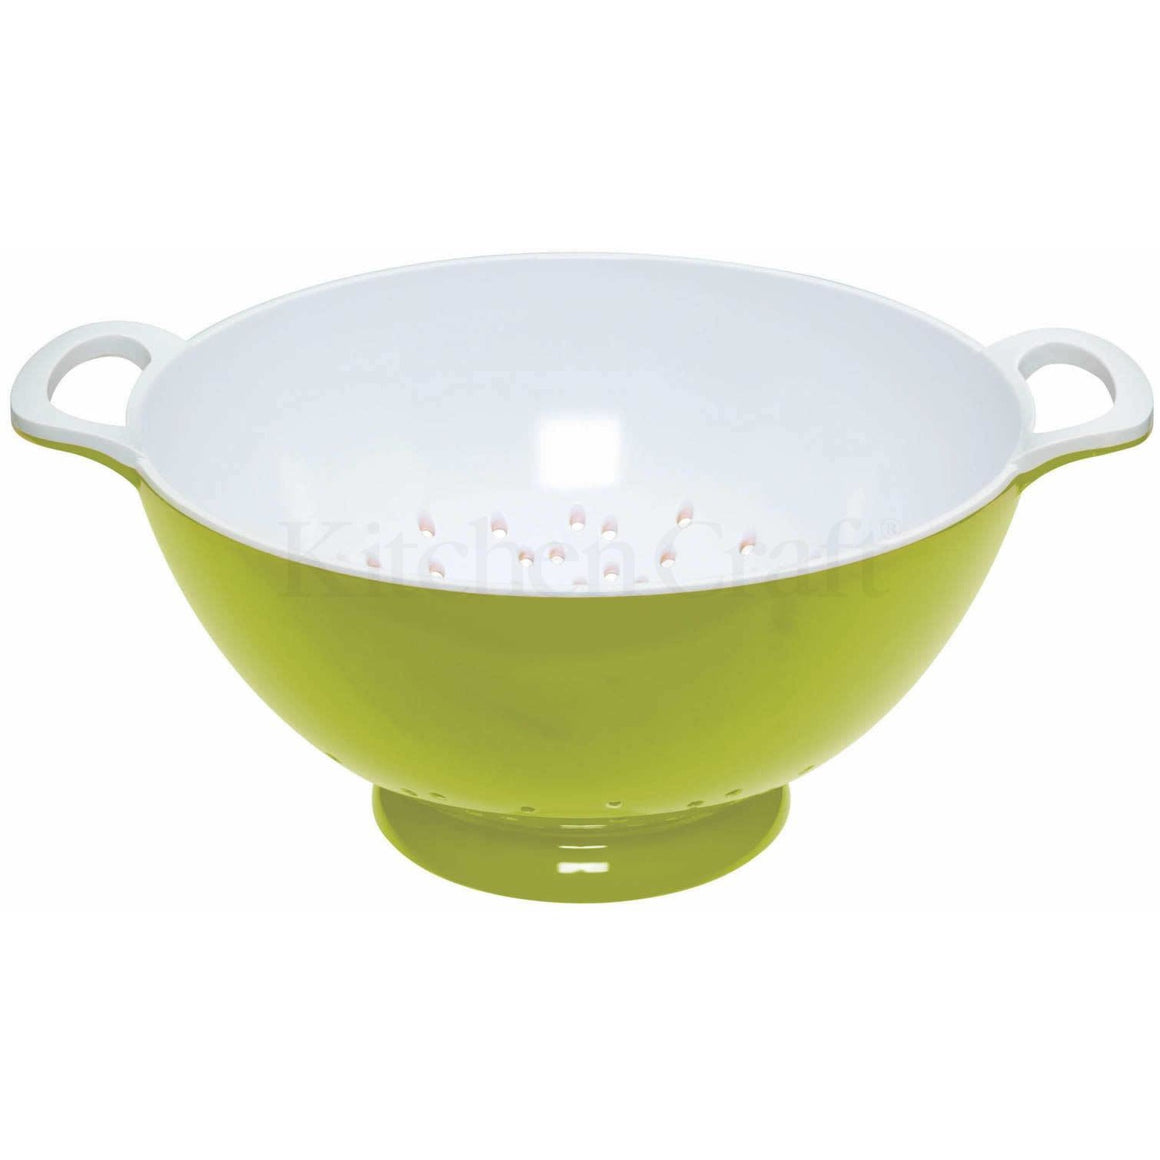 KitchenCraft Green Mini Colander